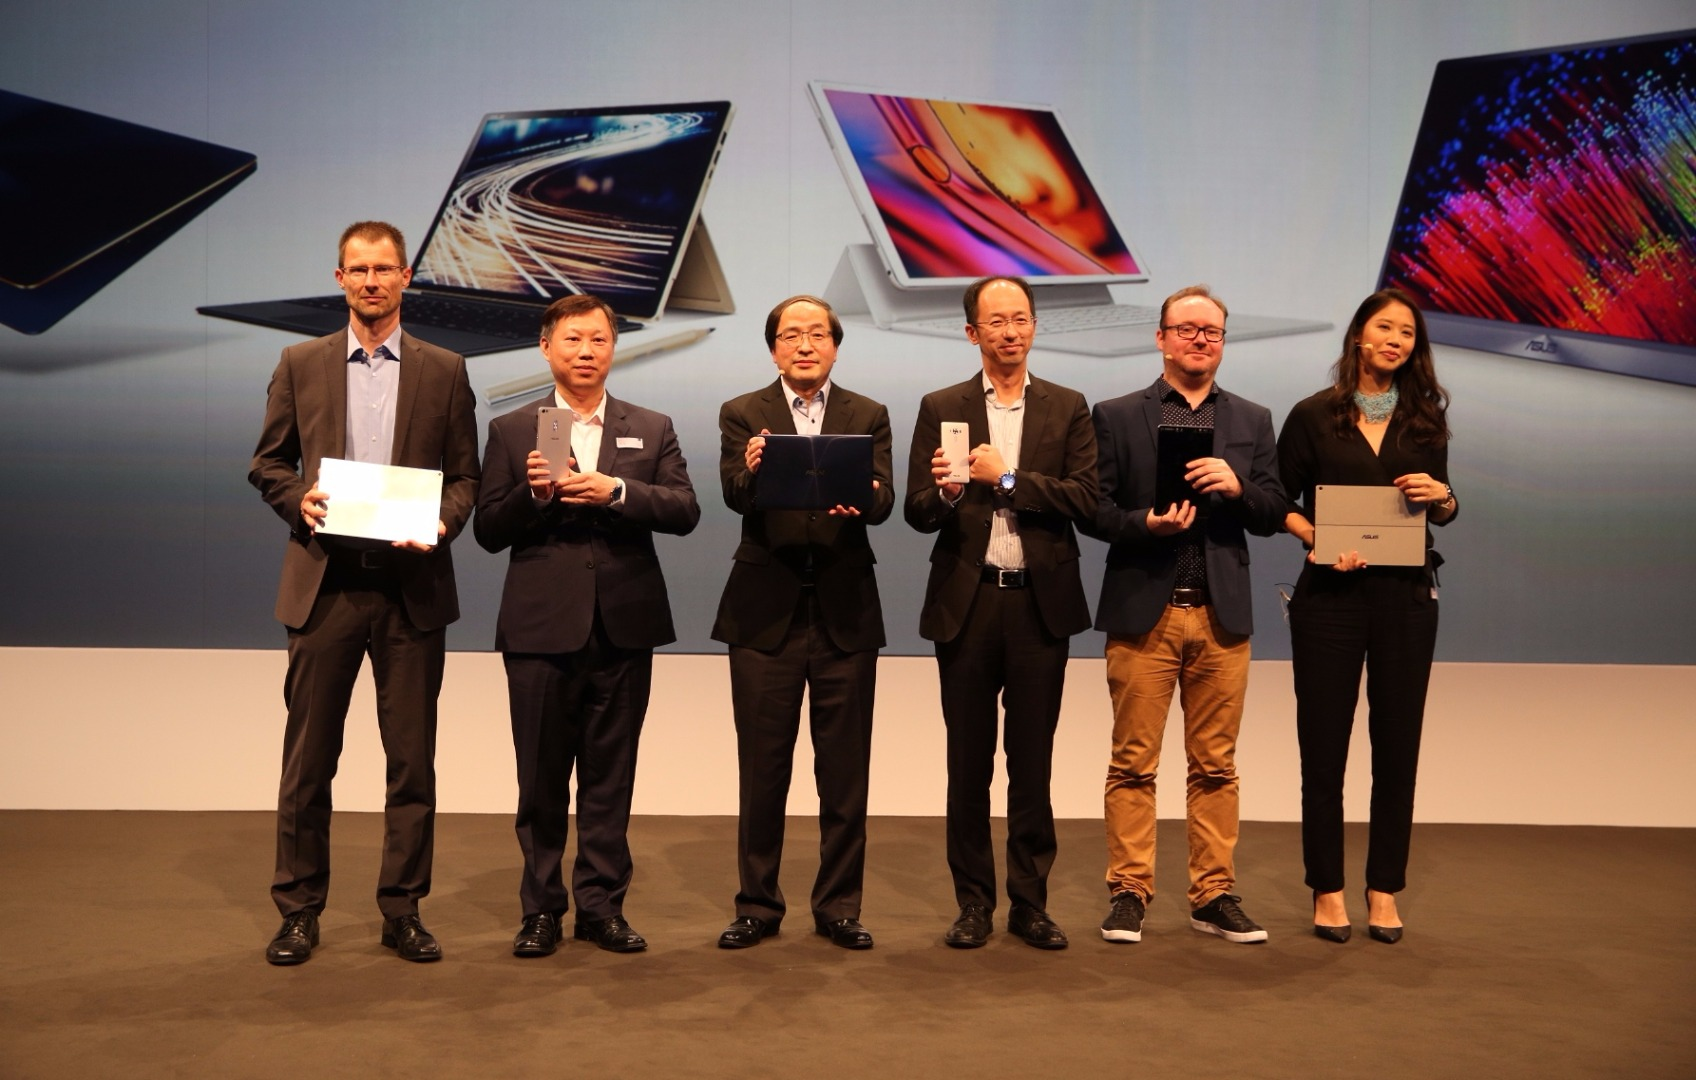 ASUS Vice President Eric Chen is joined on stage with ASUS VIPs for the Zenvolution-